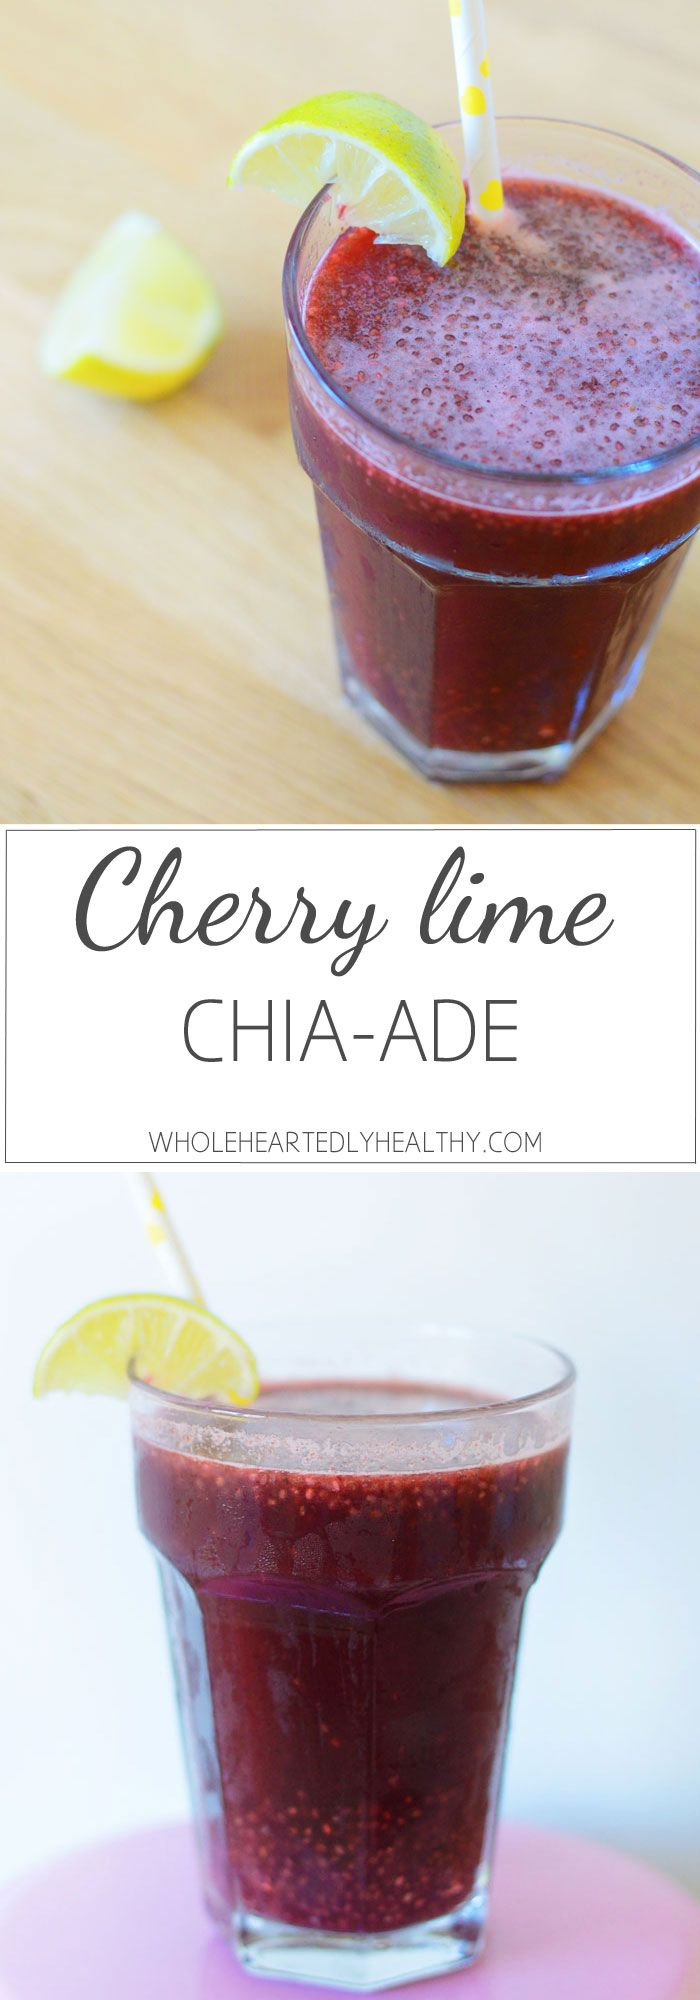 Cherry Lime Chia-ade Recipe with BRITA - Wholeheartedly Healthy